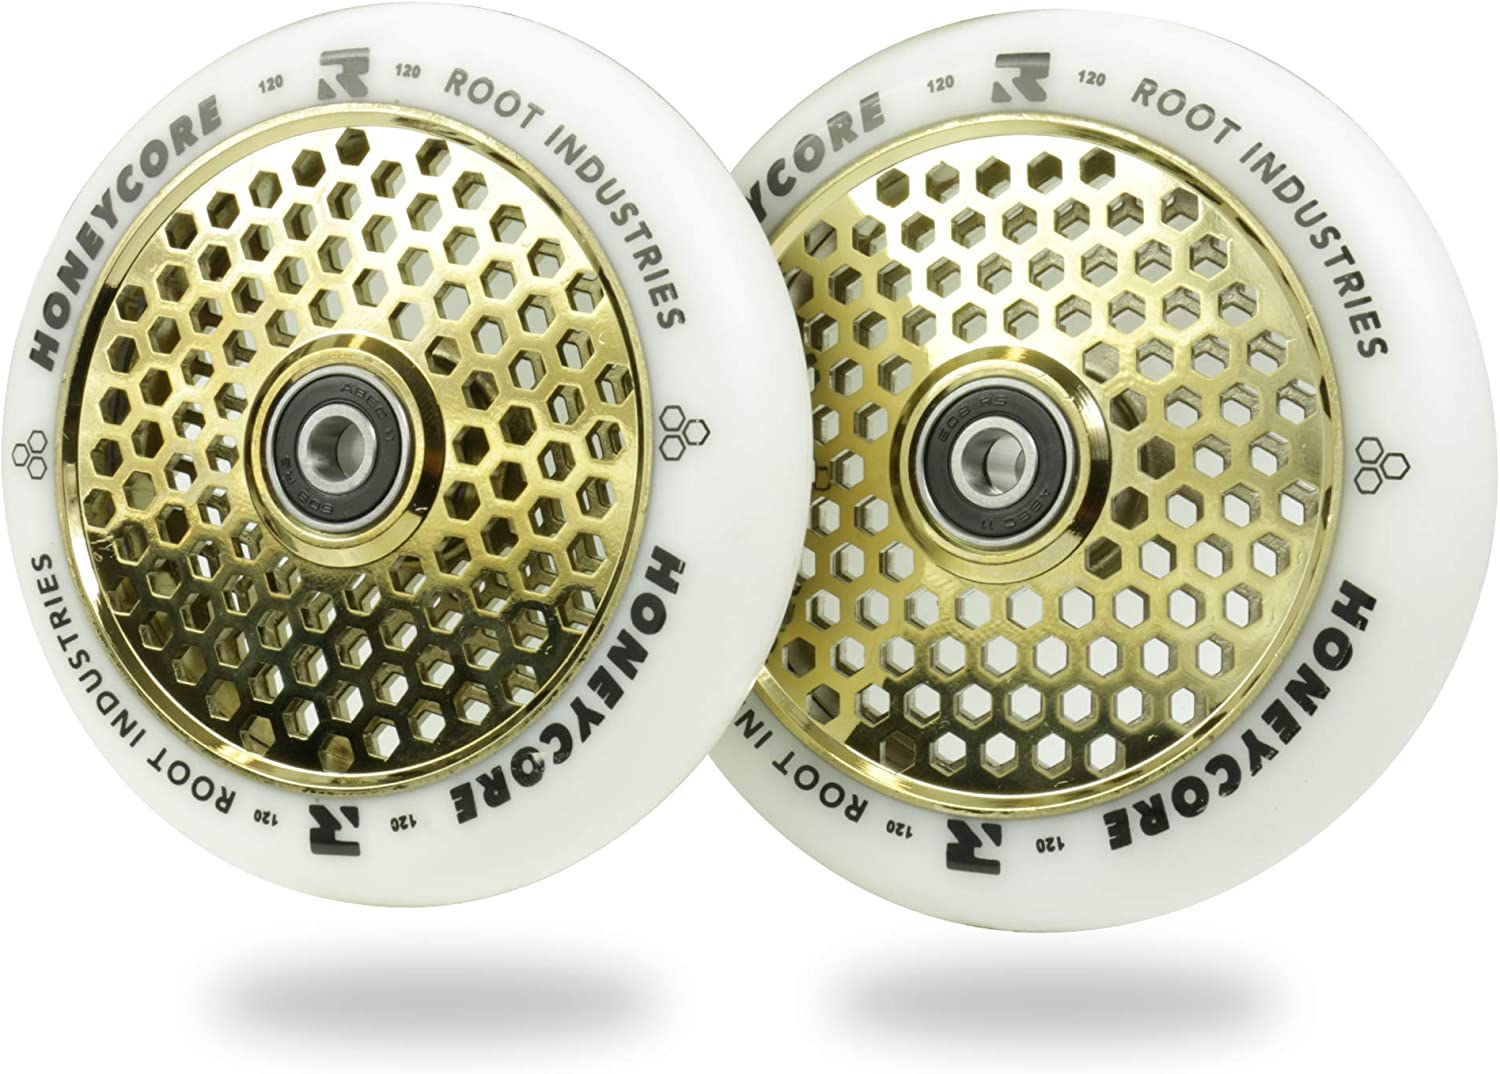 24mm x 110mm 120mm Fits Most Setups Scooter Wheels 120mm Pro Scooter Wheels Pair ROOT INDUSTRIES Honeycore Wheels 110mm Bearings Installed 90 Day Warranty